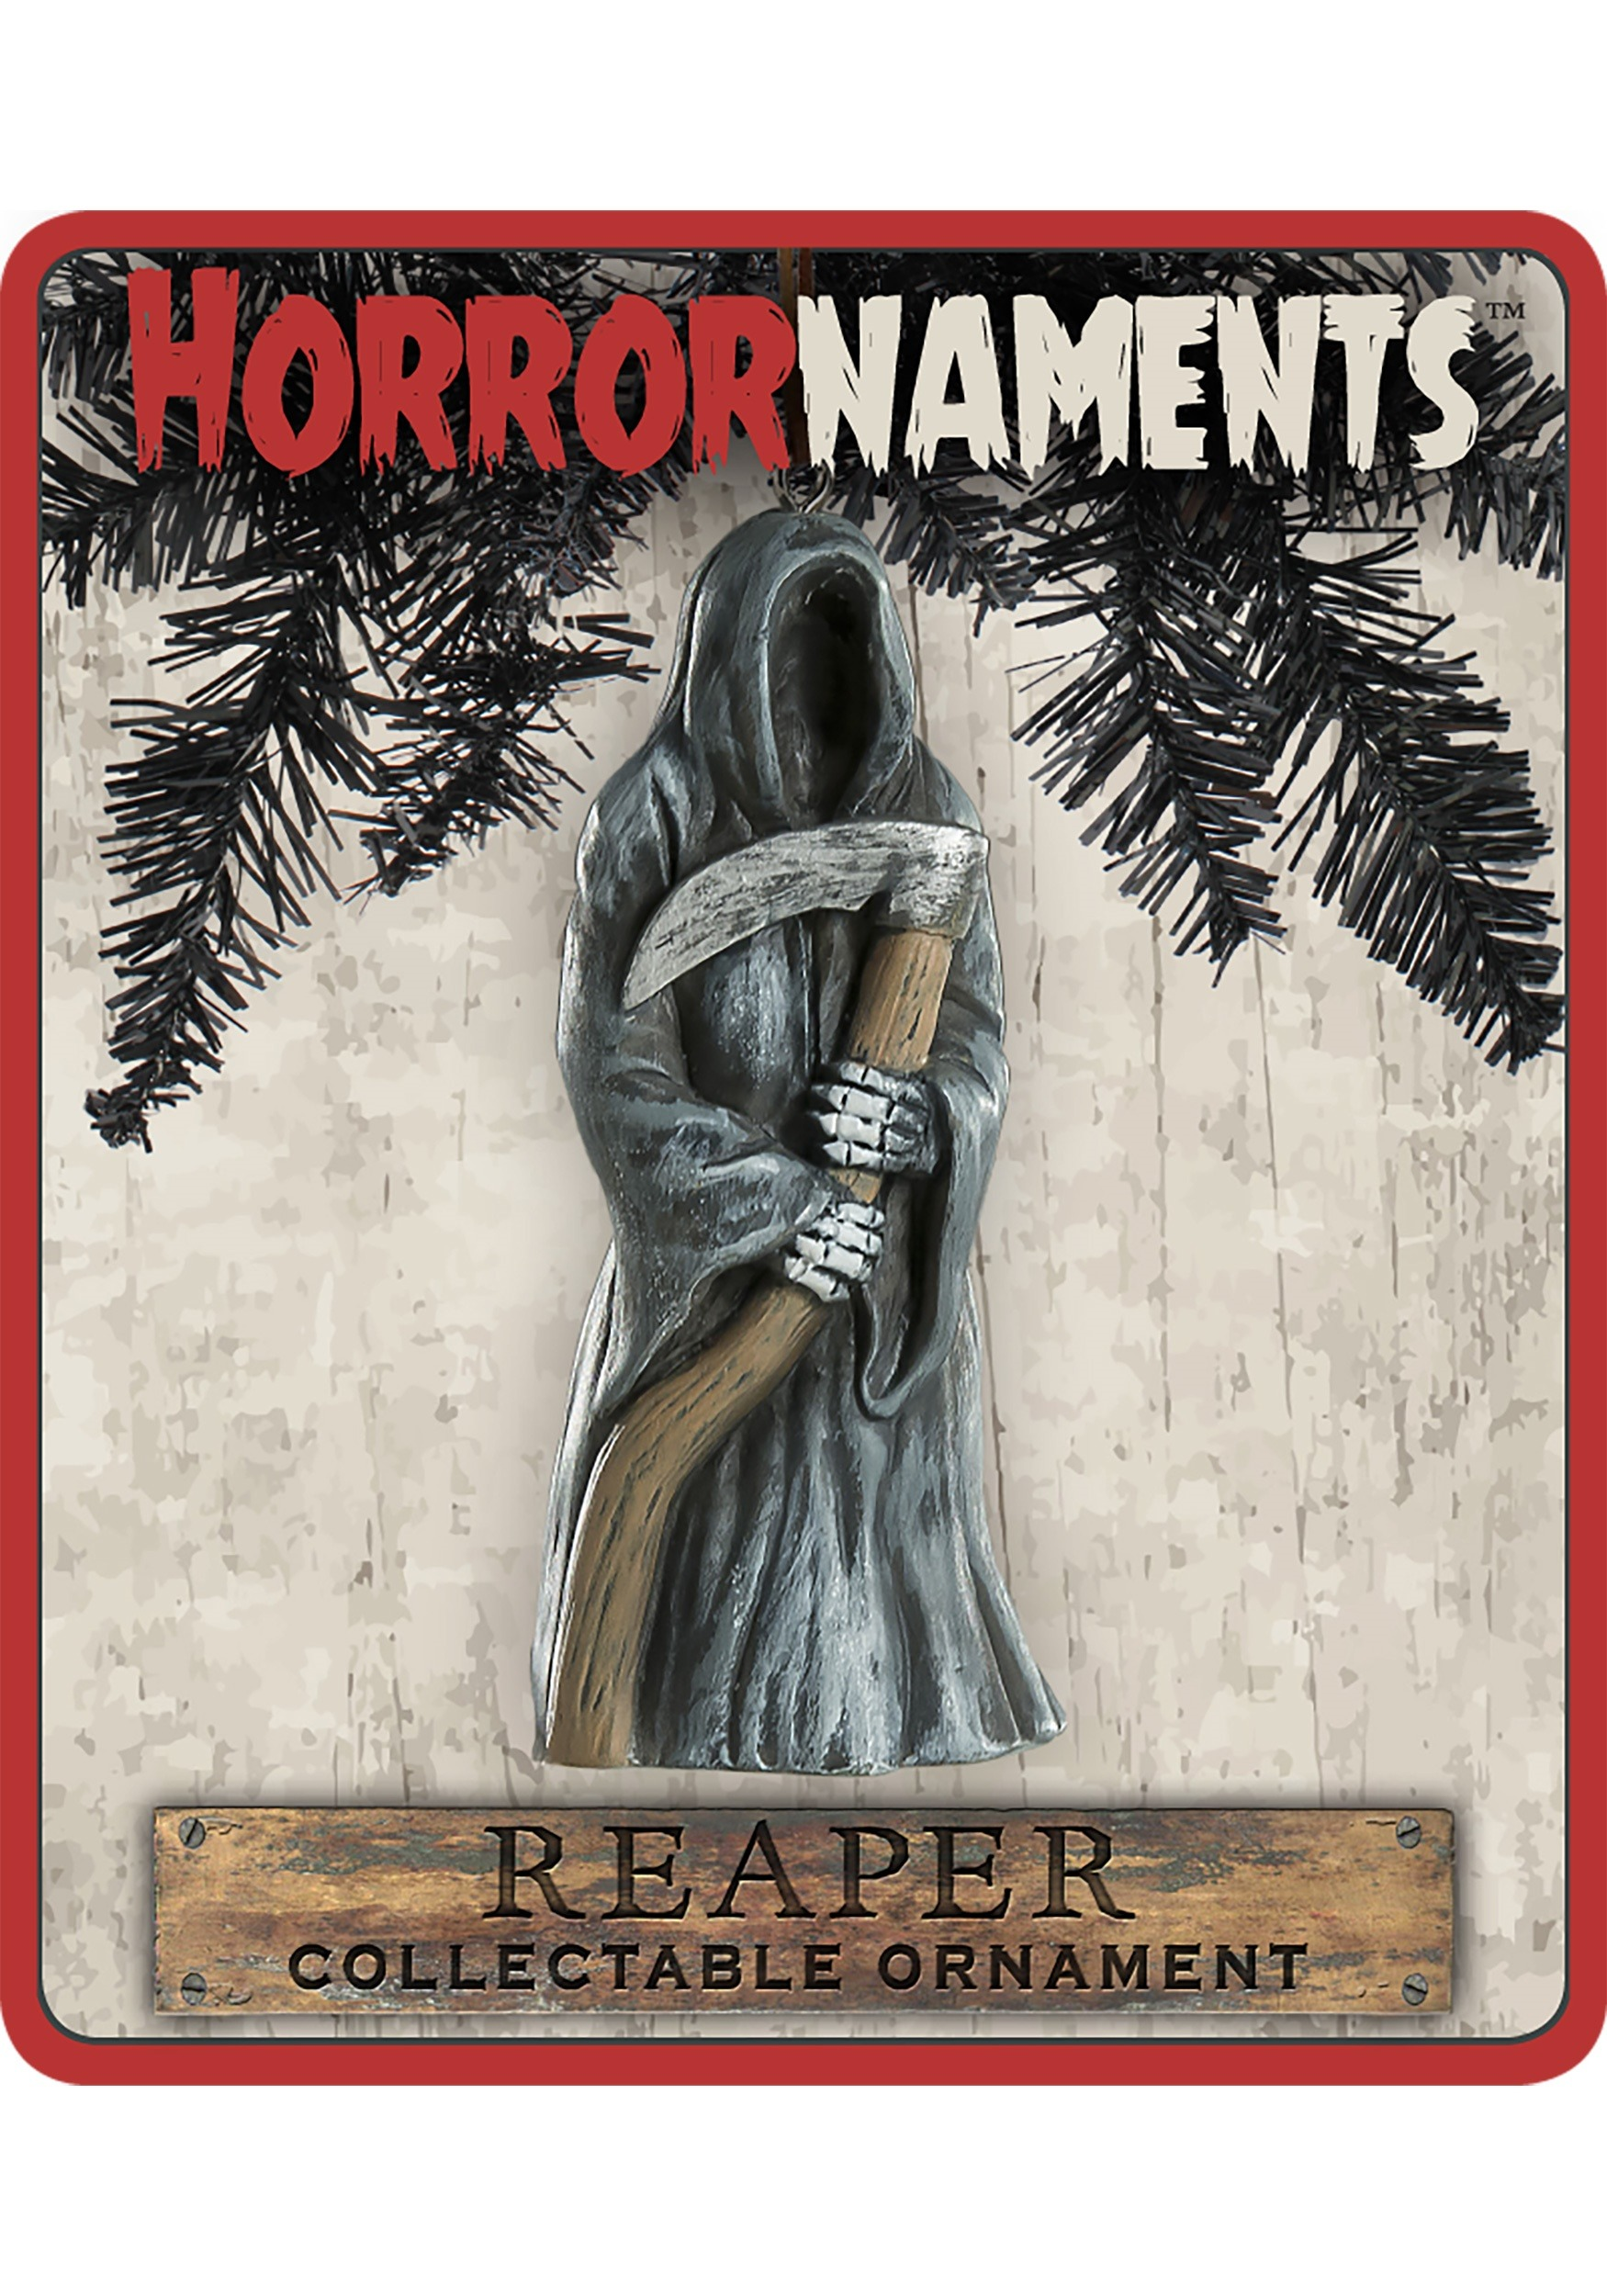 Reaper Horrornaments Molded Ornament